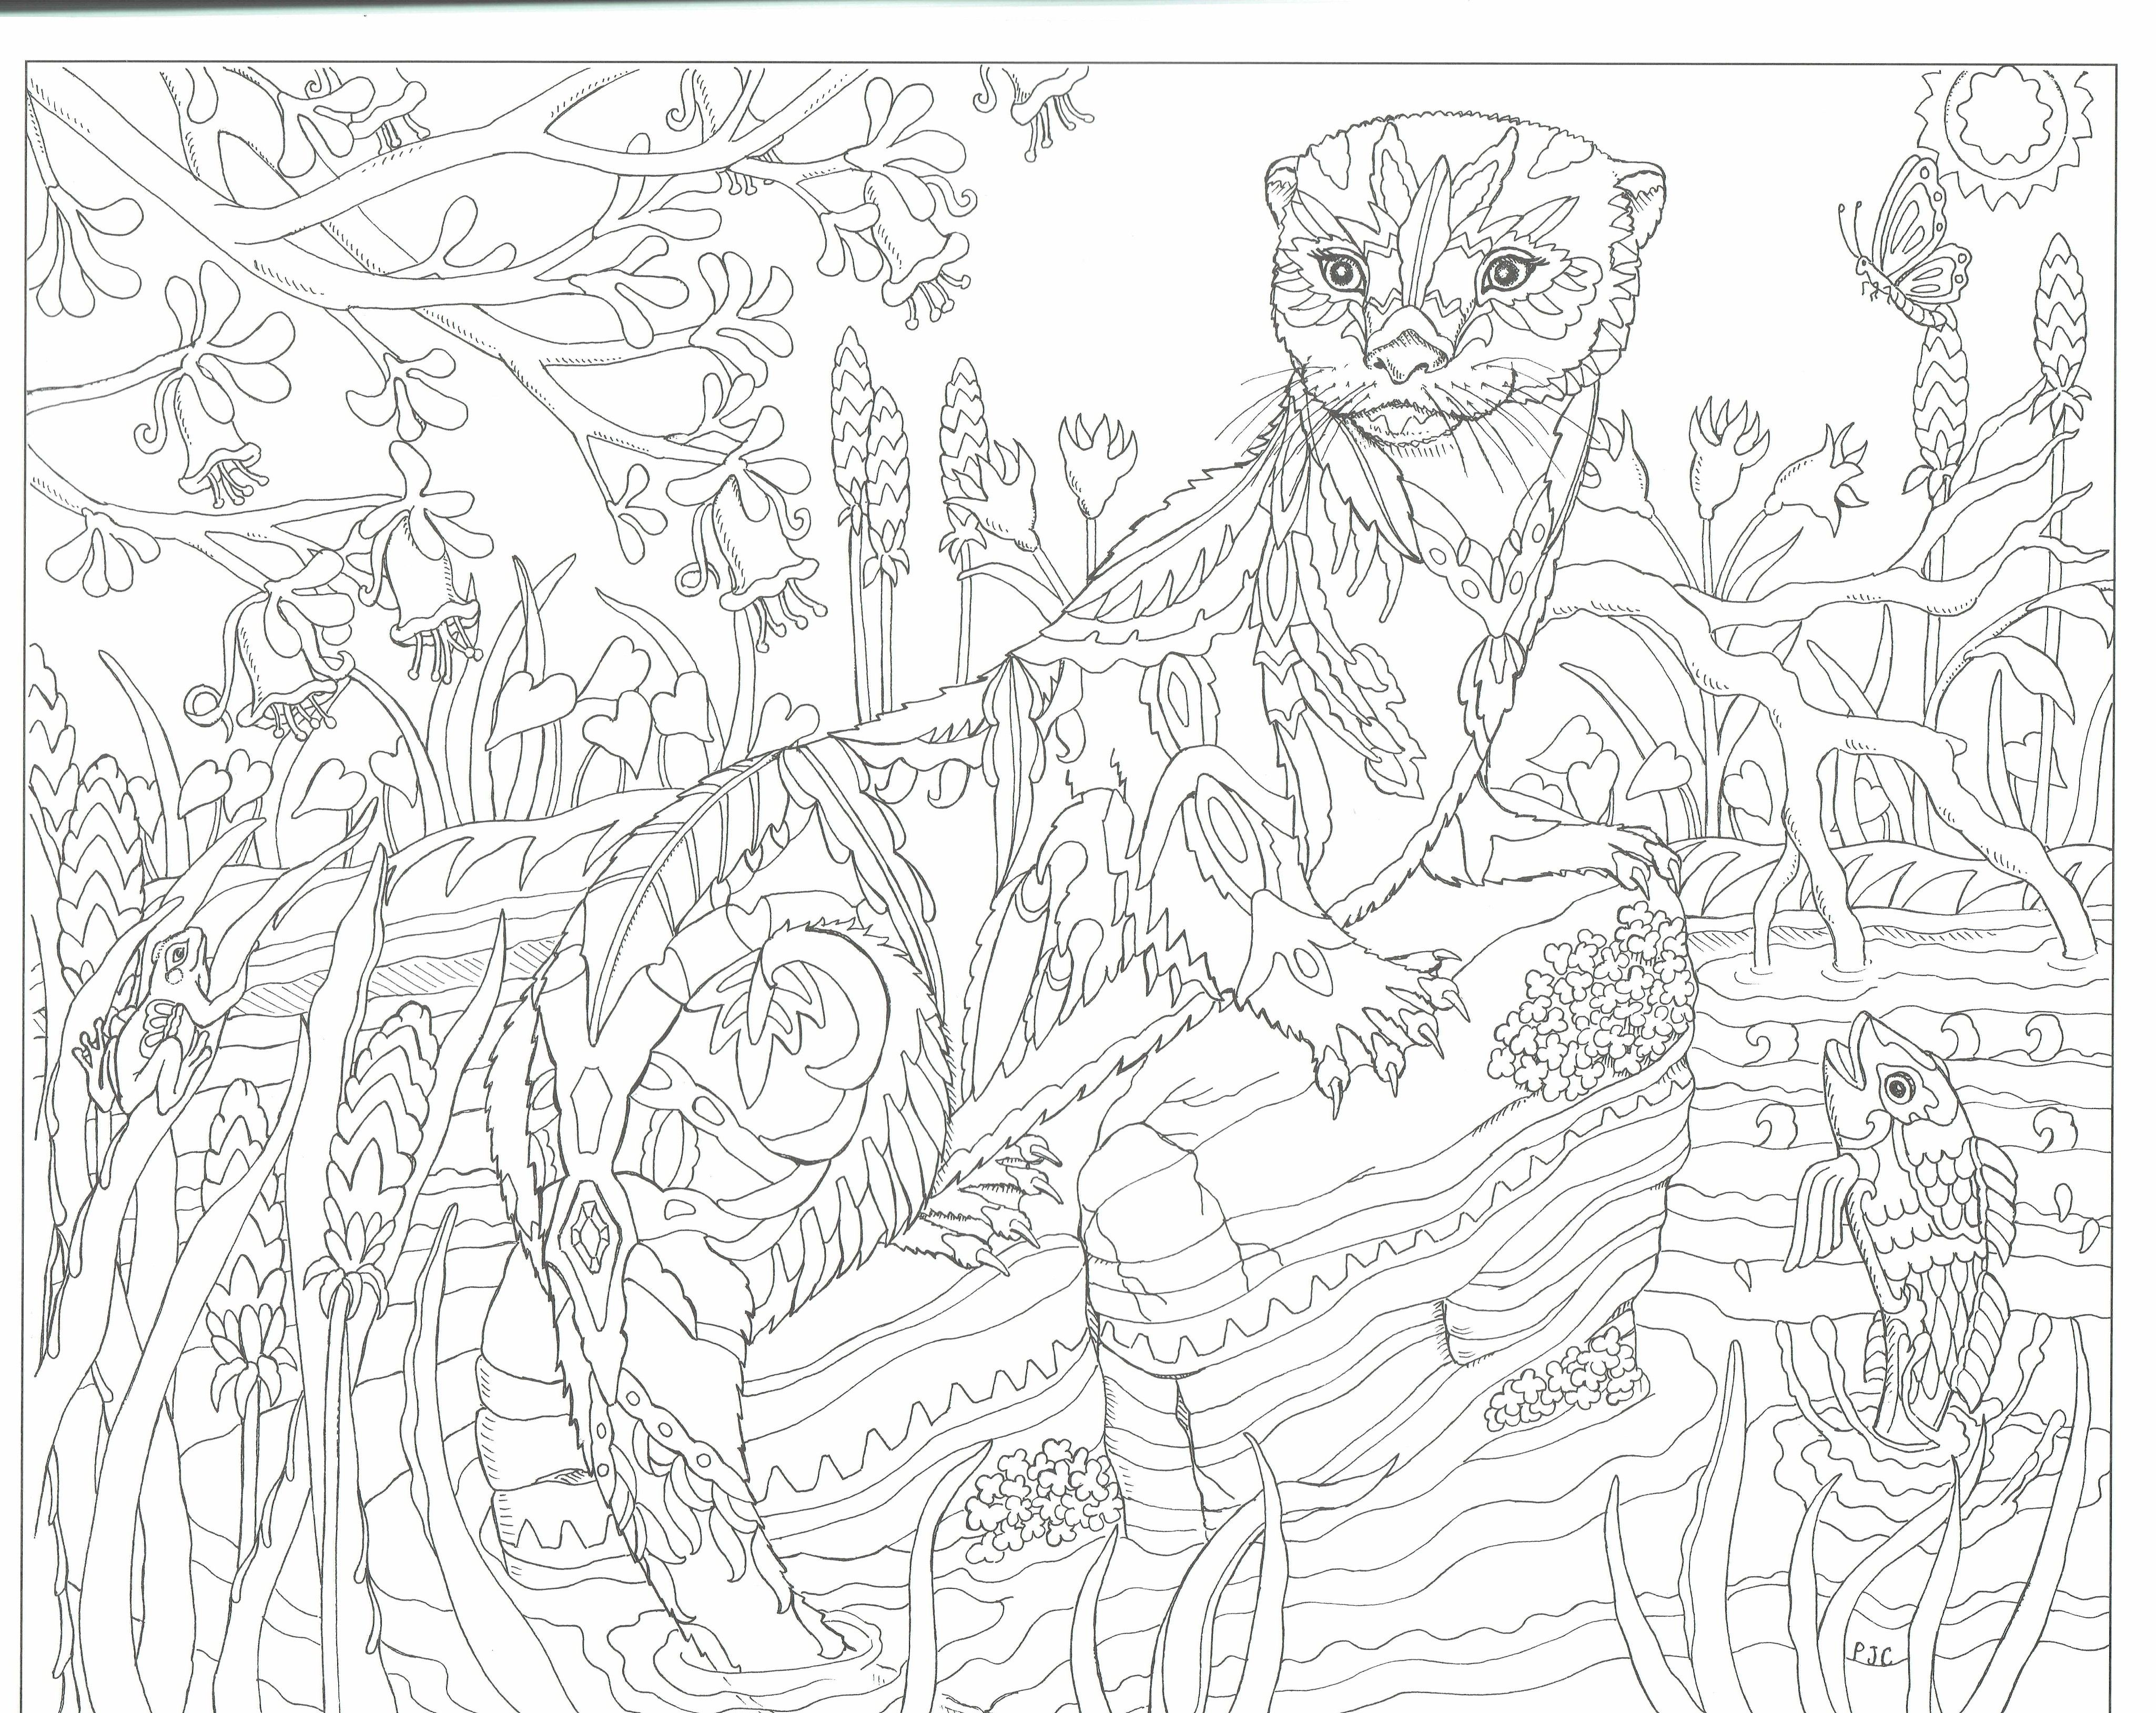 Epingle Sur Adult Coloring Pages To Save And Print